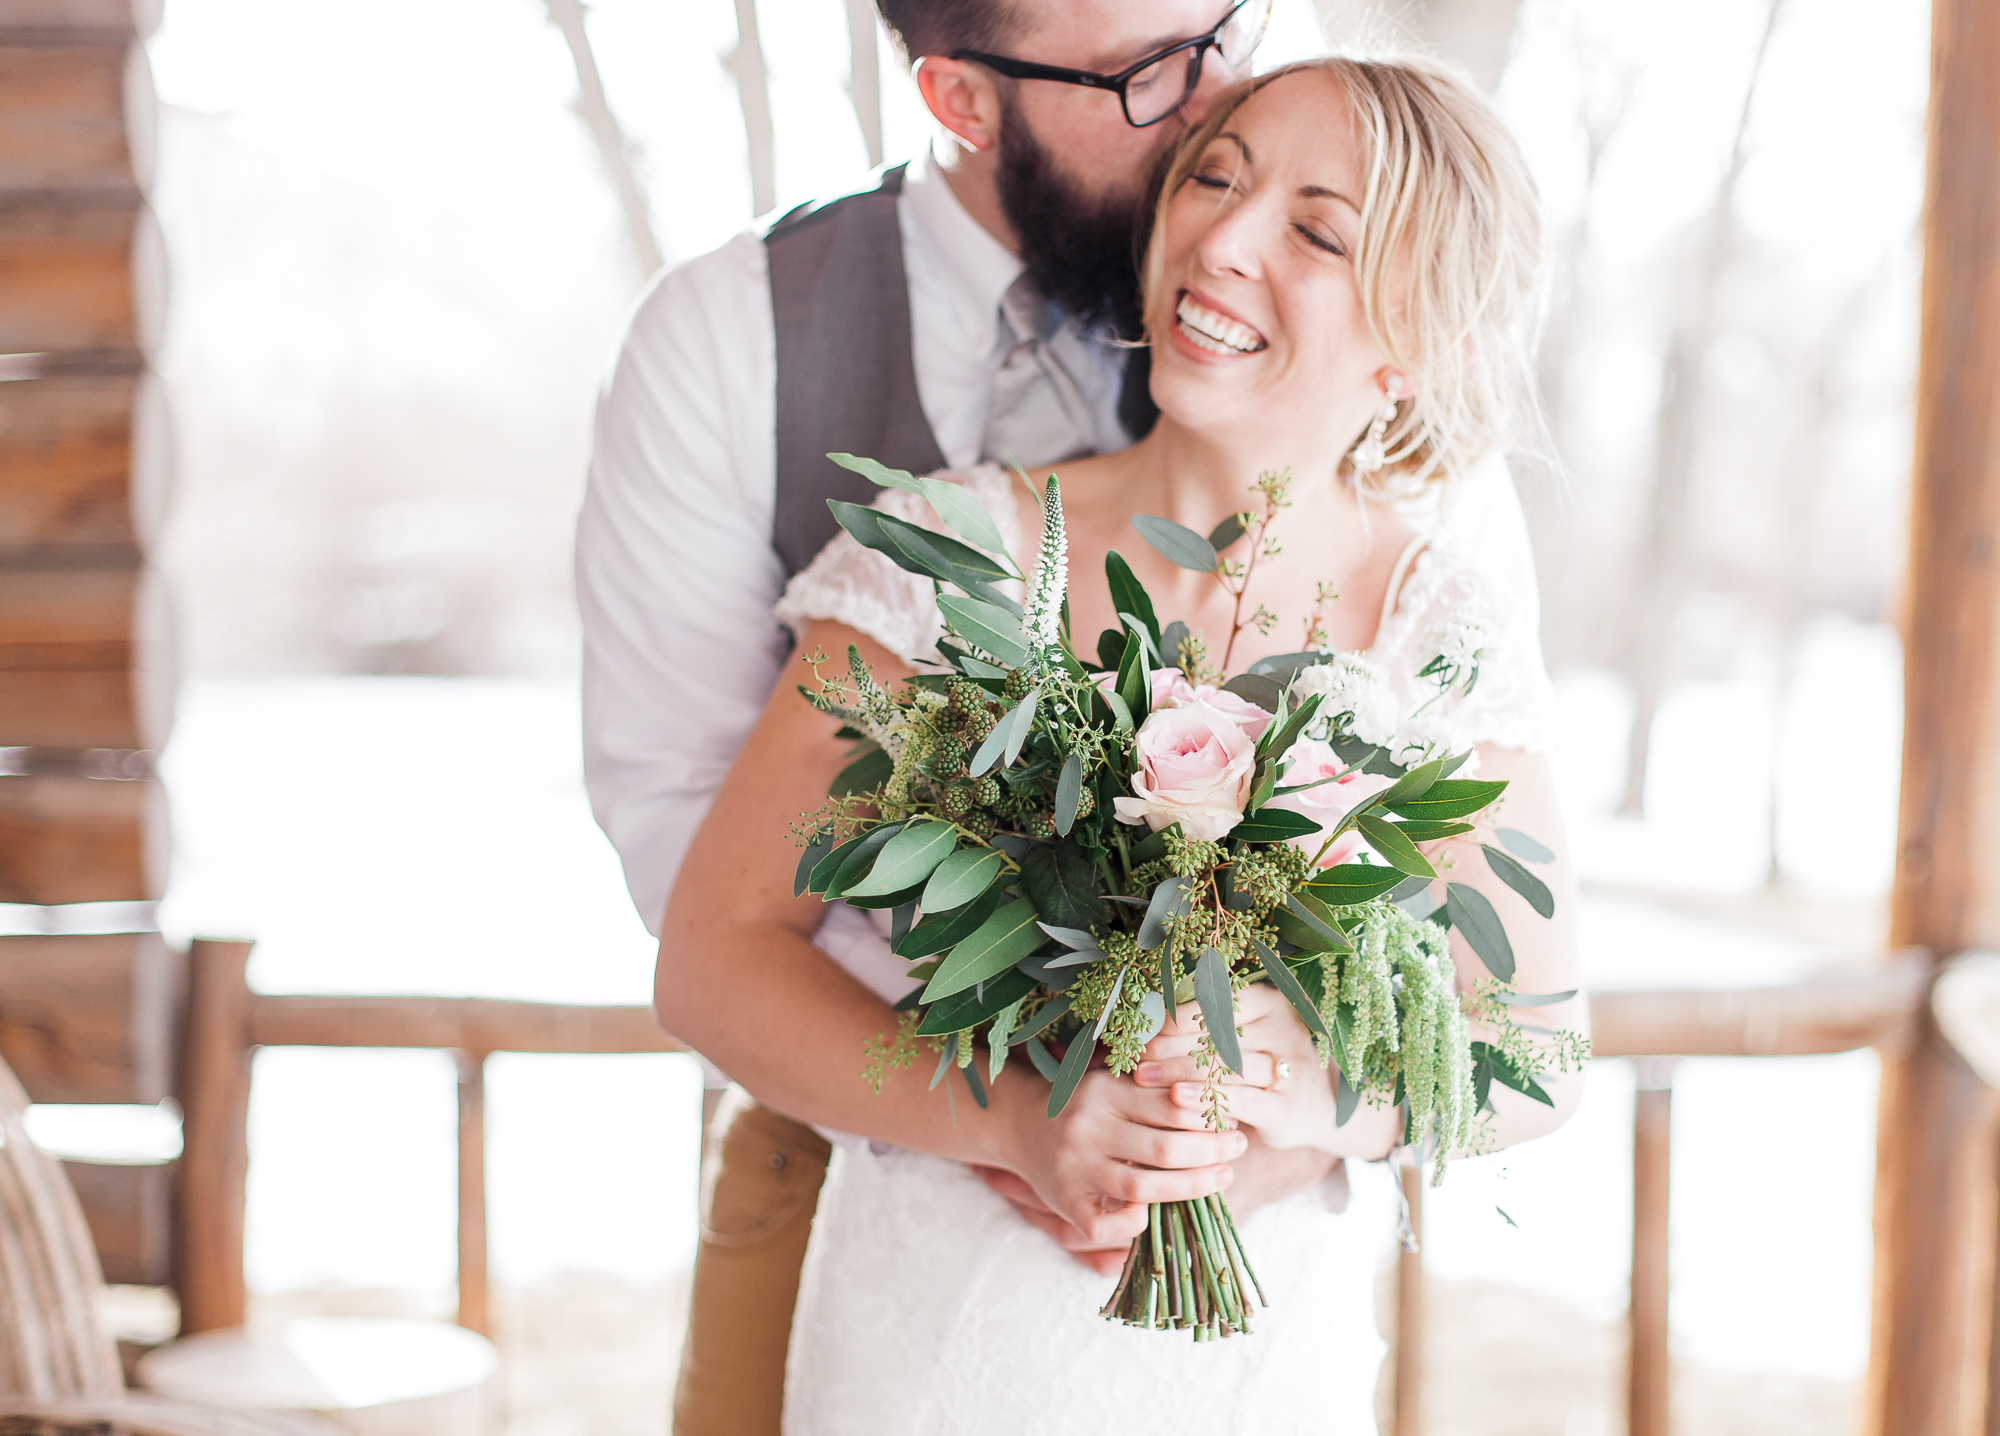 Sean and Annastasia were the absolute perfect models for this styled inspirational shoot last winter.... and were officially engaged soon after! This was the same styled shoot listed above at the Vee Bar Ranch and featured in Rocky Mountain Bride.  https://www.wyomingweddingphotographer.com/megan-lee-photography/featured-rocky-mountain-bride-magazine